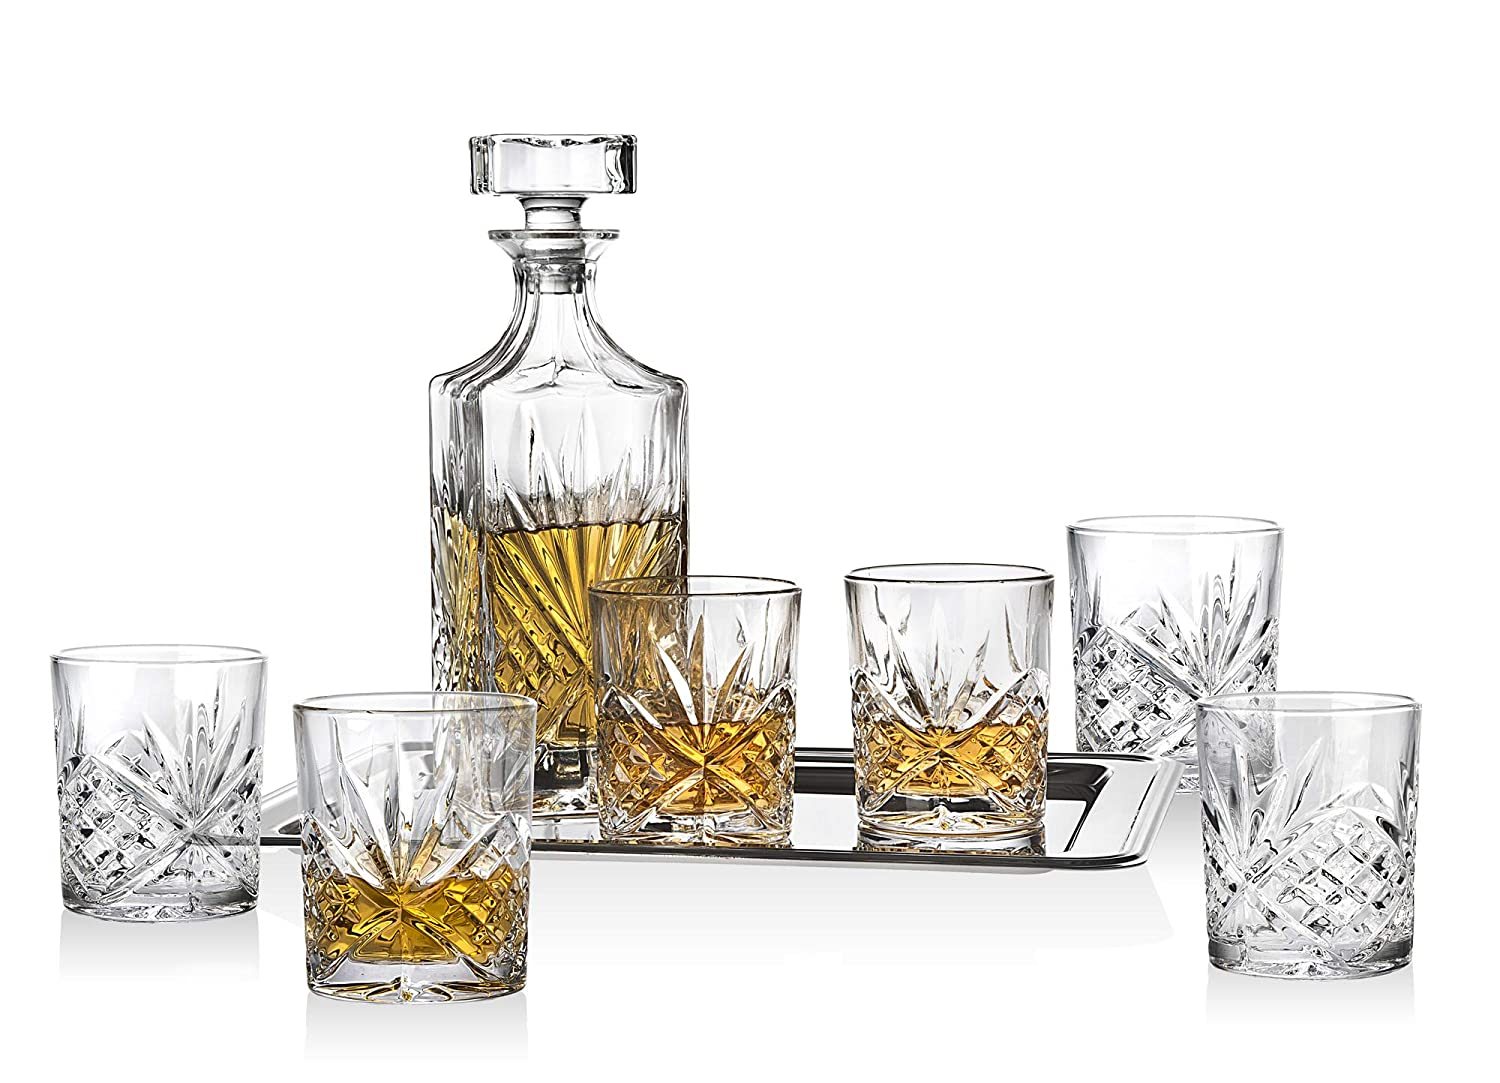 Dublin Whiskey Bar Set - Includes Whisky Decanter, 6 Old Fashioned Tumbler Glasses and Display Serving Tray Godinger NA